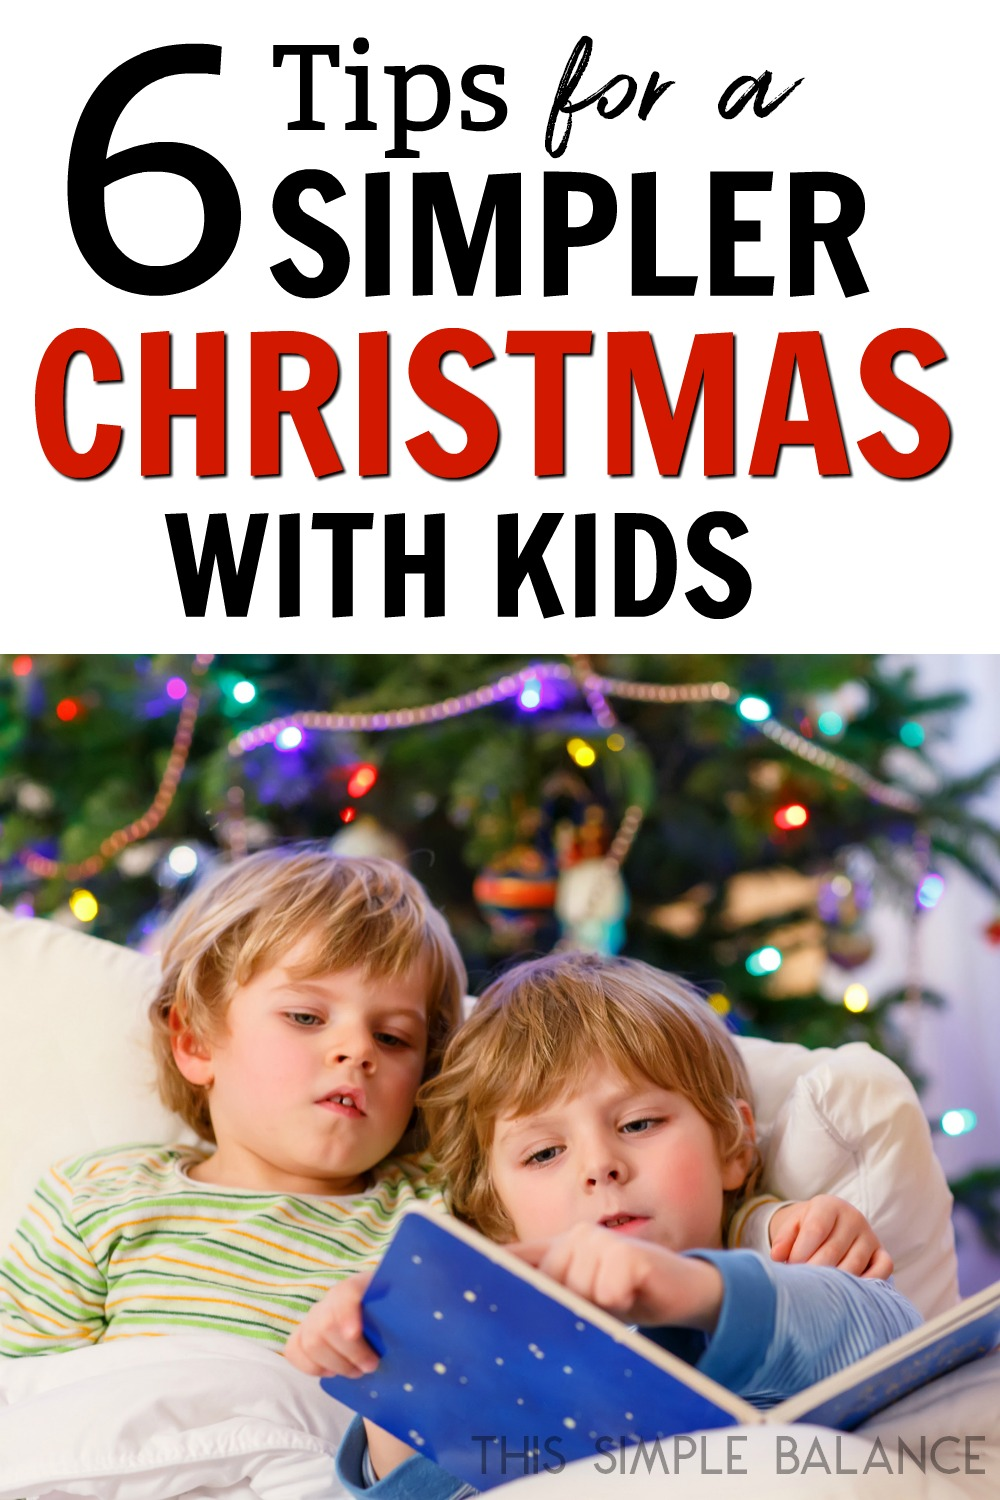 A Simple Christmas with Kids: 6 Tips to Slow Down and Simplify this Christmas